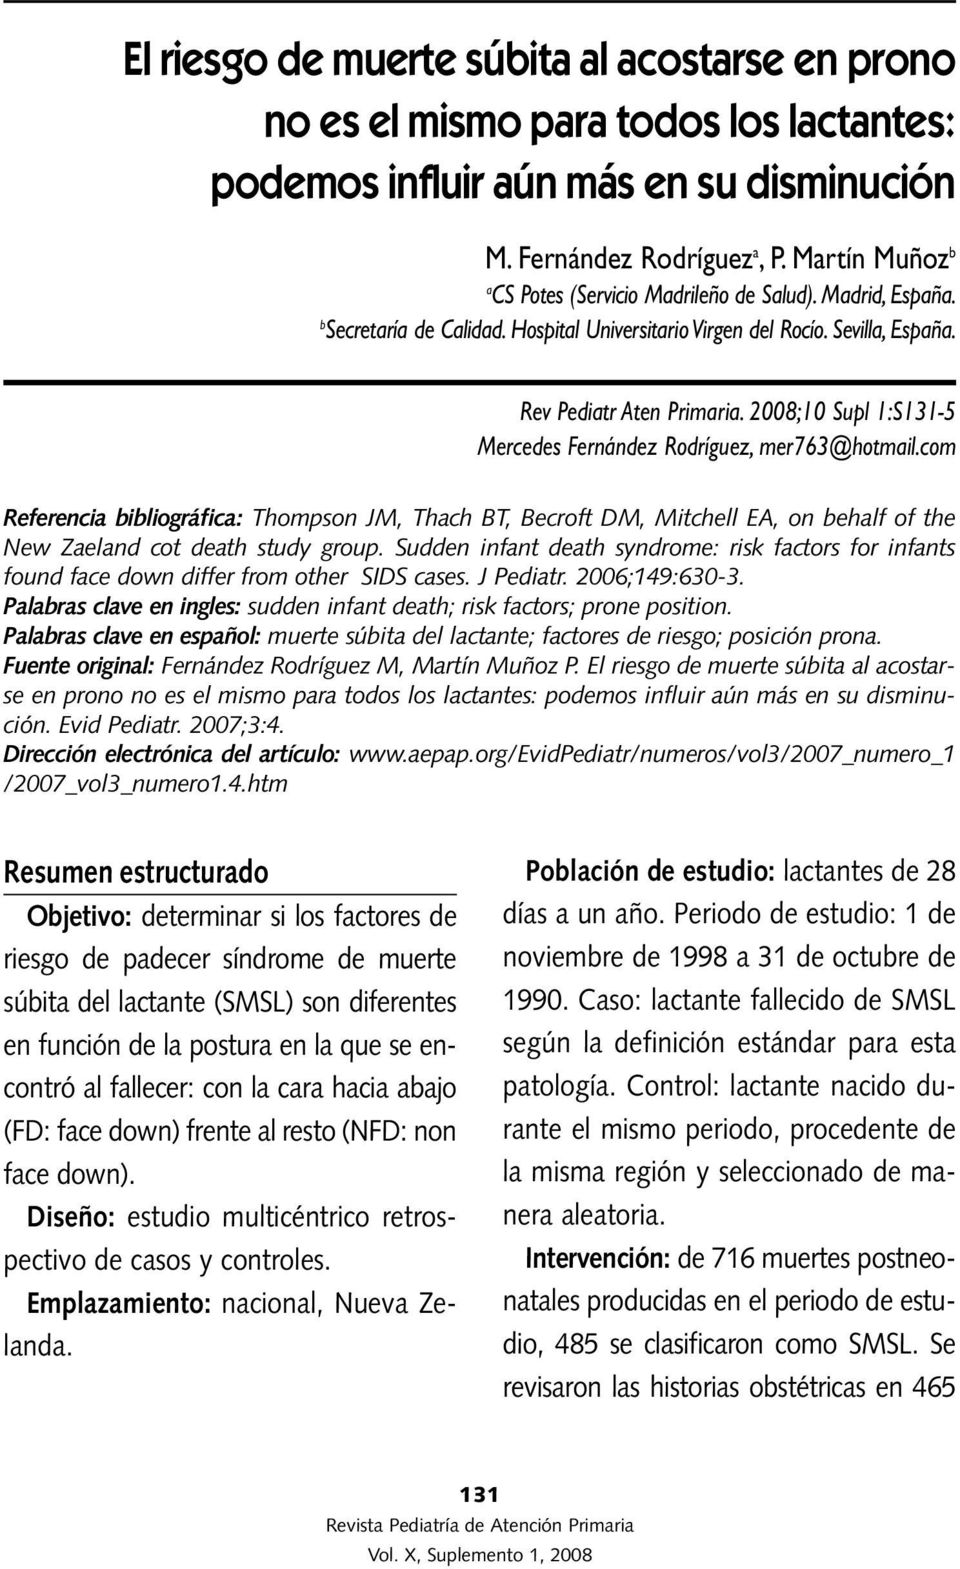 2008;10 Supl 1:S131-5 Mercedes Fernández Rodríguez, mer763@hotmail.com Referencia bibliográfica: Thompson JM, Thach BT, Becroft DM, Mitchell EA, on behalf of the New Zaeland cot death study group.